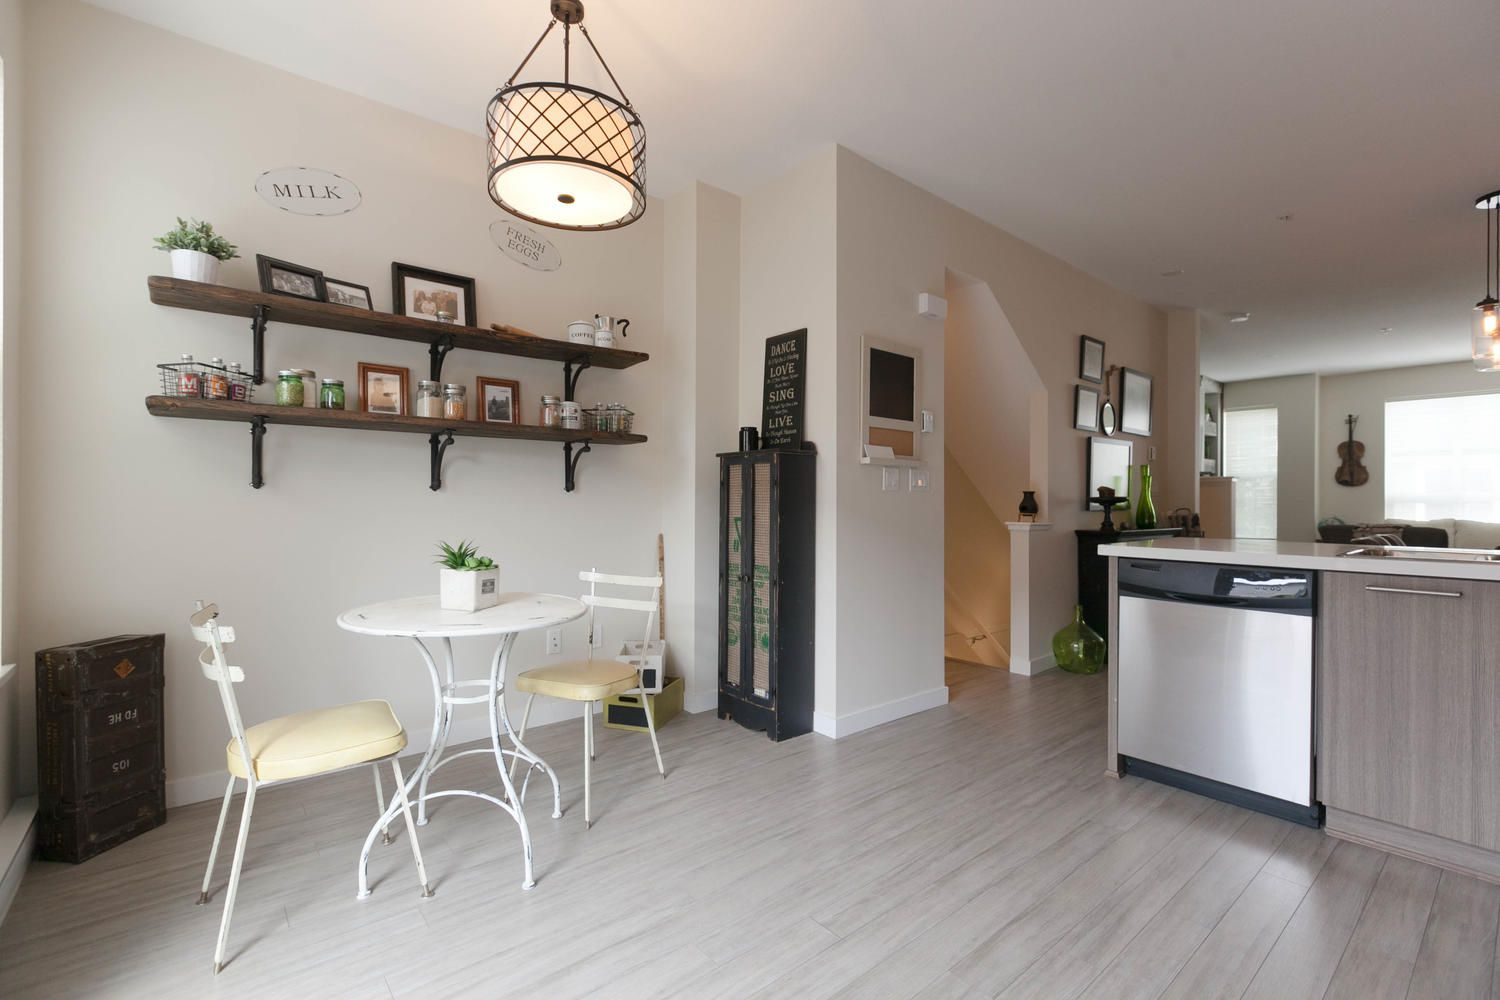 """Photo 19: Photos: 97 7938 209 Street in Langley: Willoughby Heights Townhouse for sale in """"Red Maple Park"""" : MLS®# R2260950"""